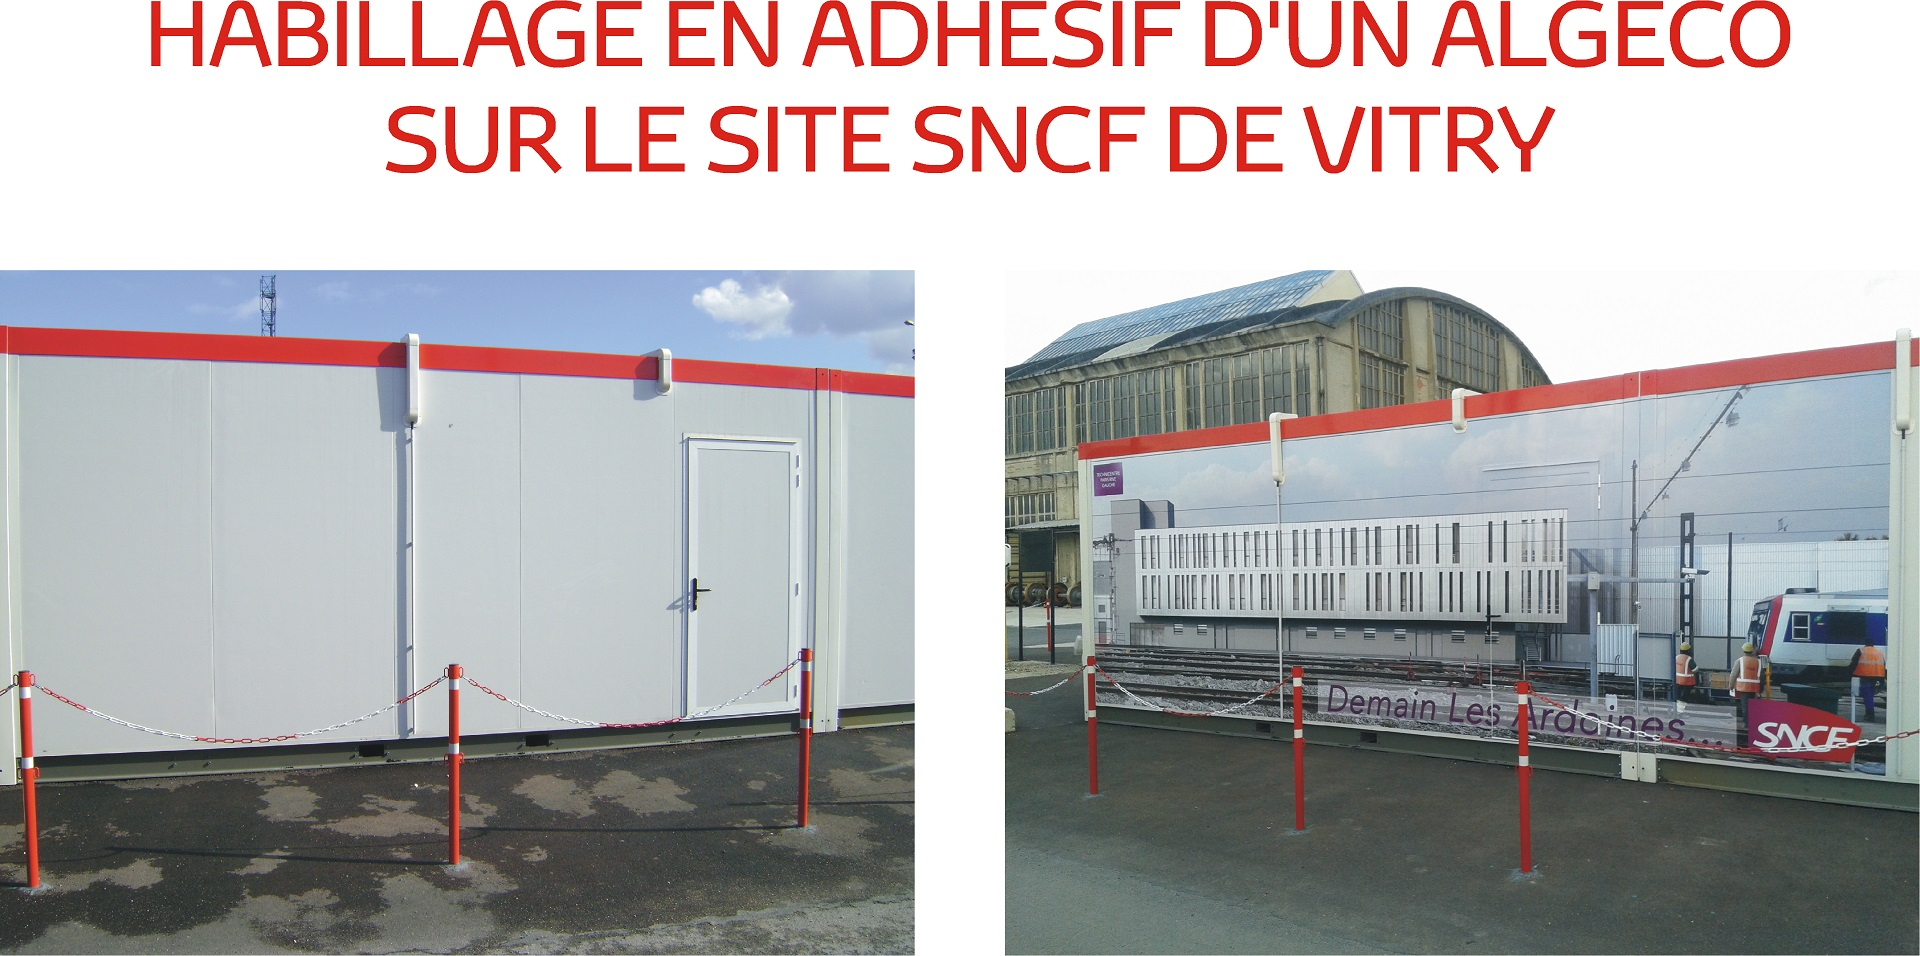 habillage-algeco-sncf-vitry